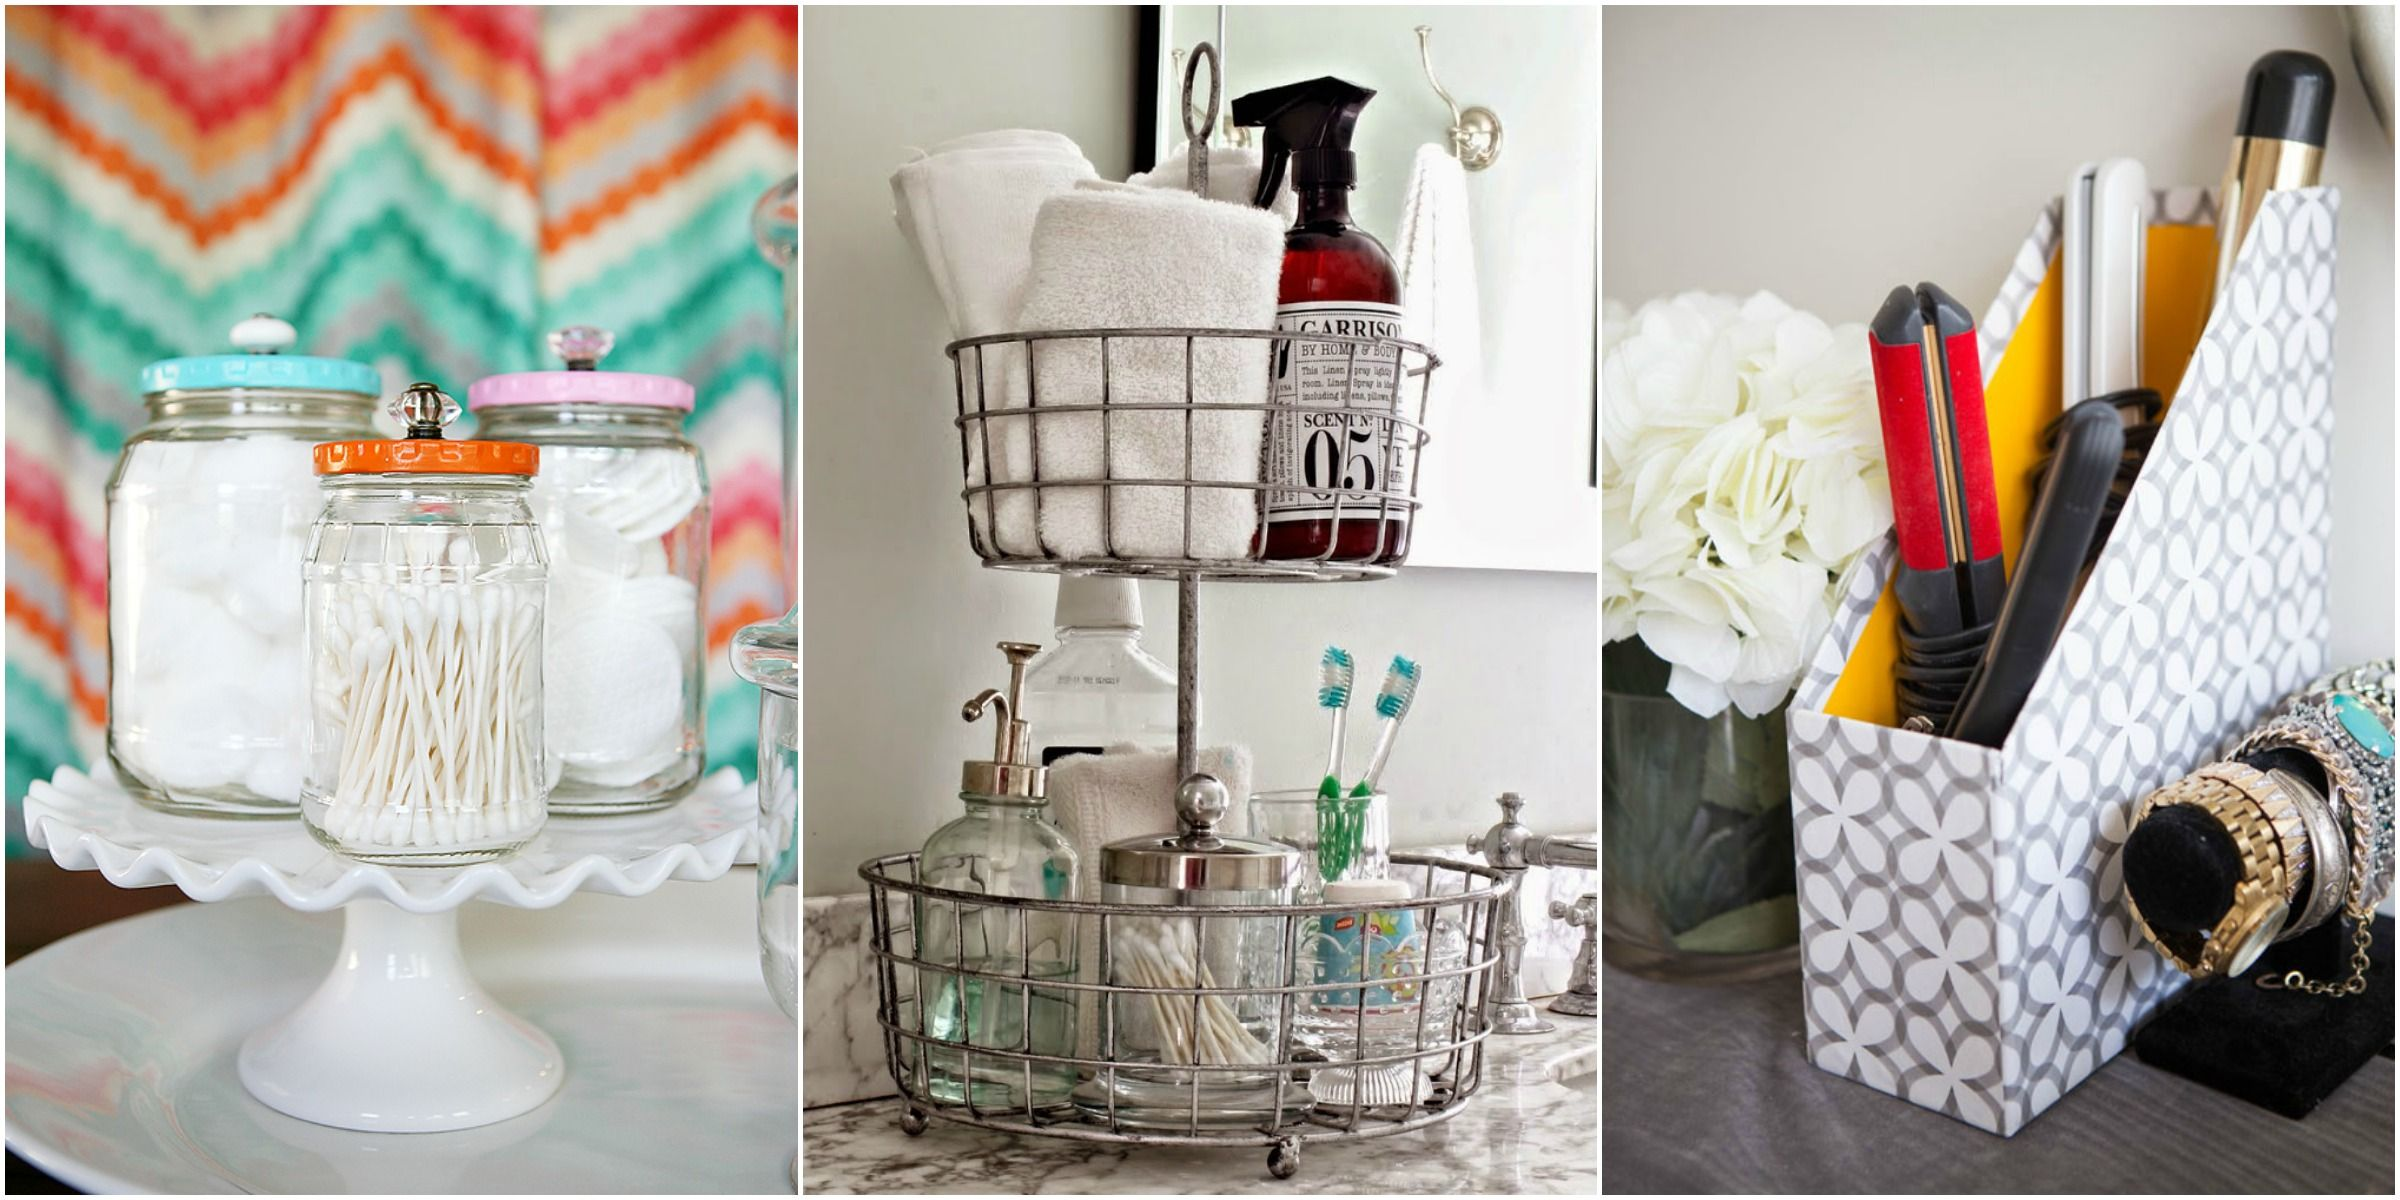 17 Bathroom Storage And Organization Ideas How To Organize Your Counter Vanity